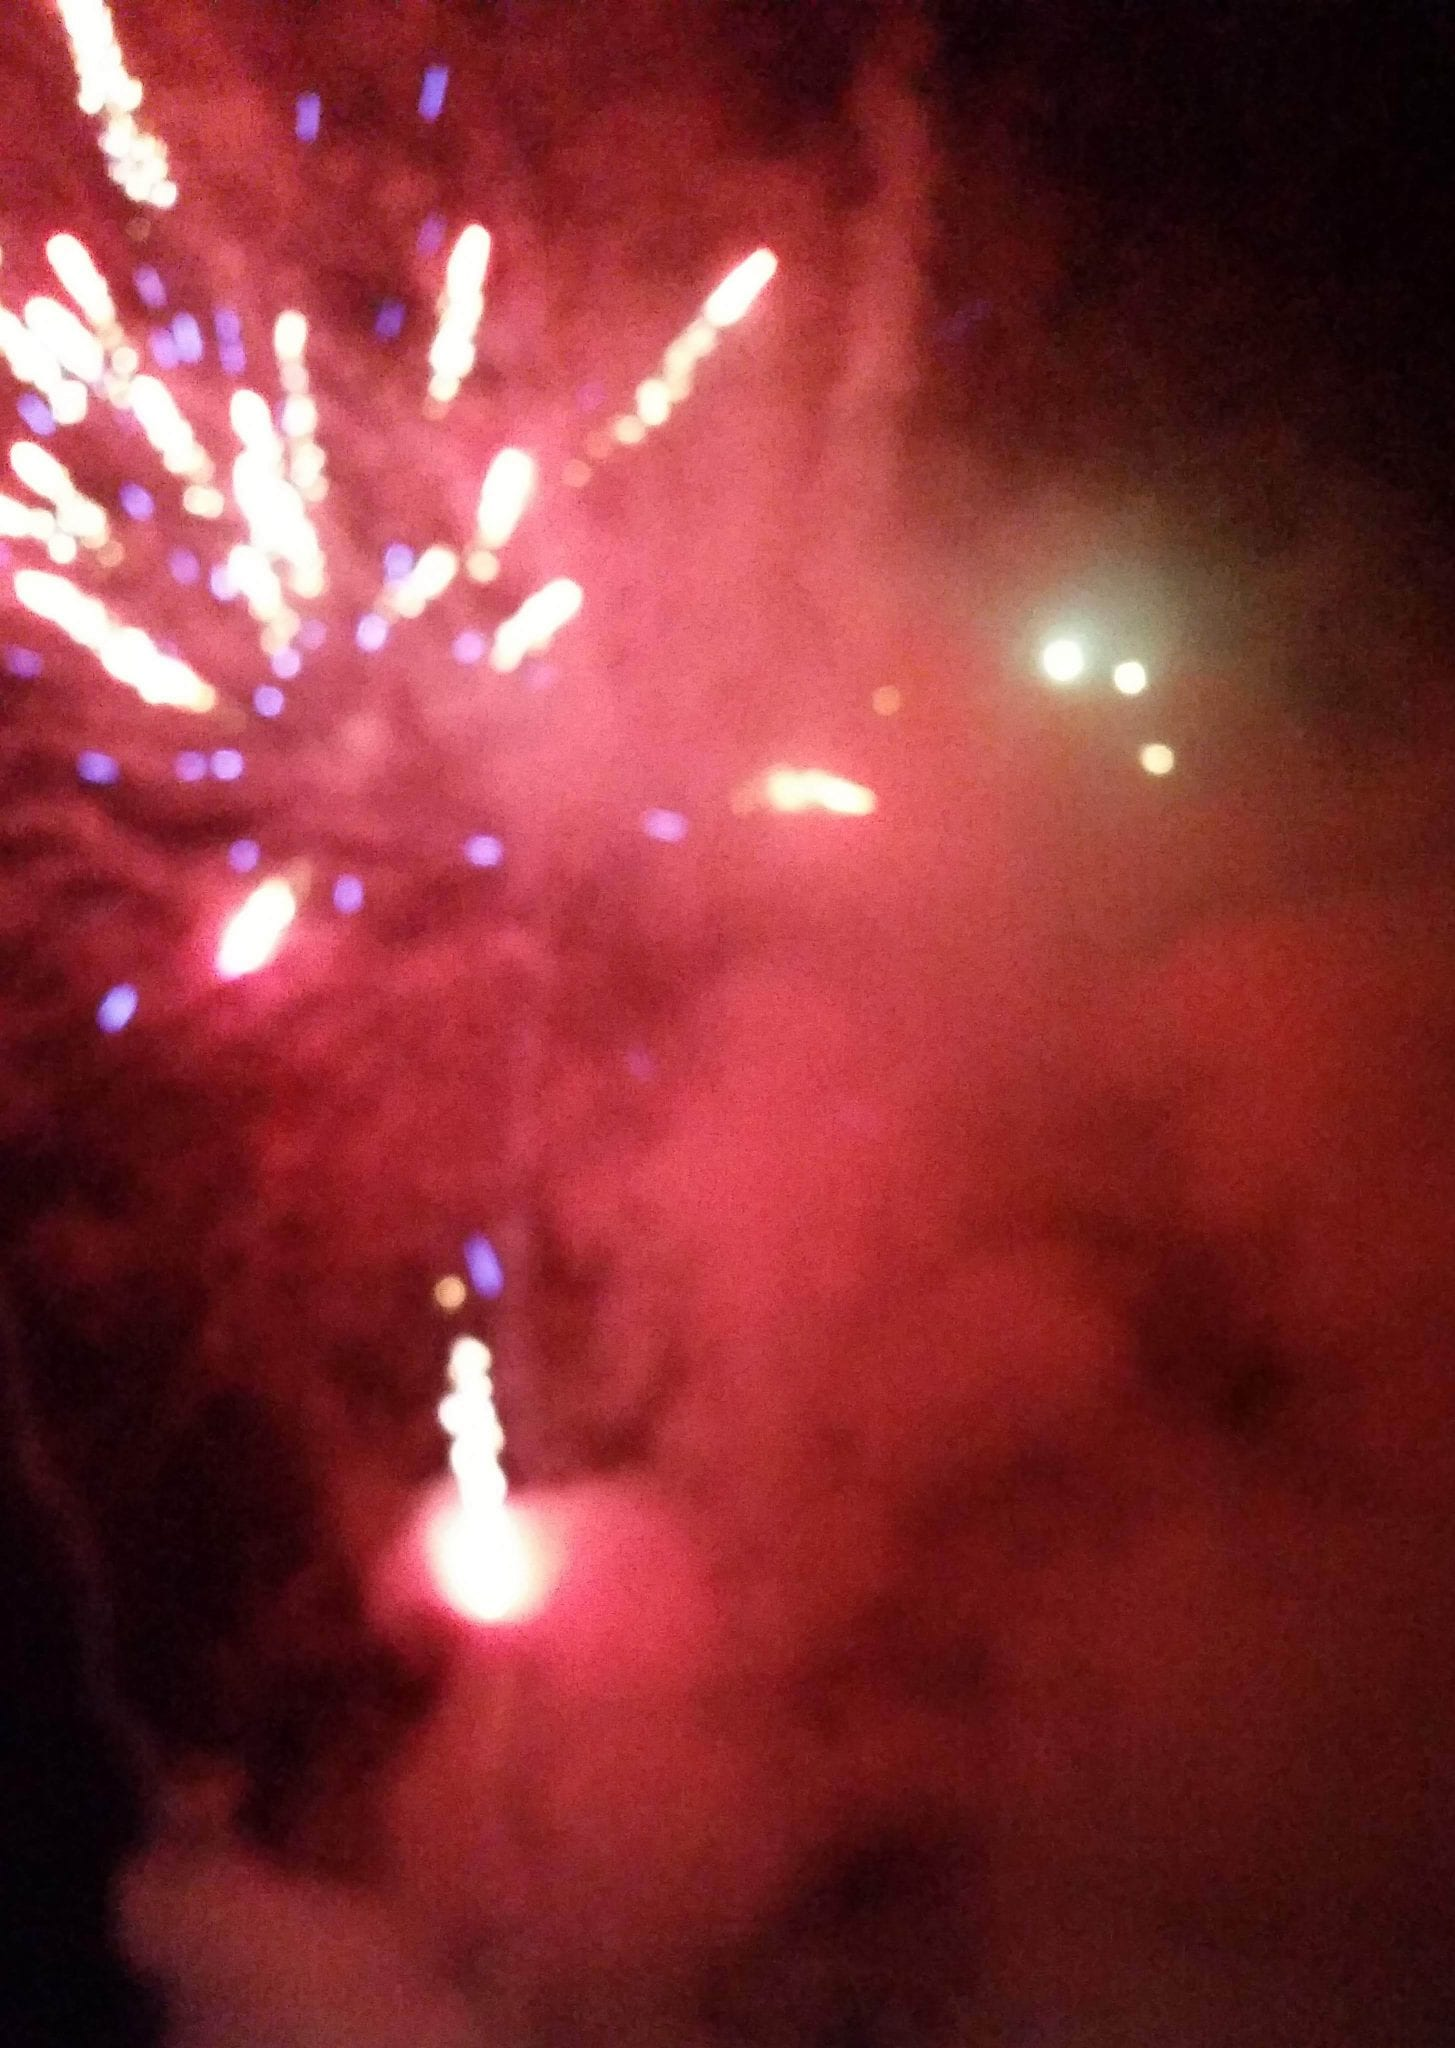 Fireworks and red smoke